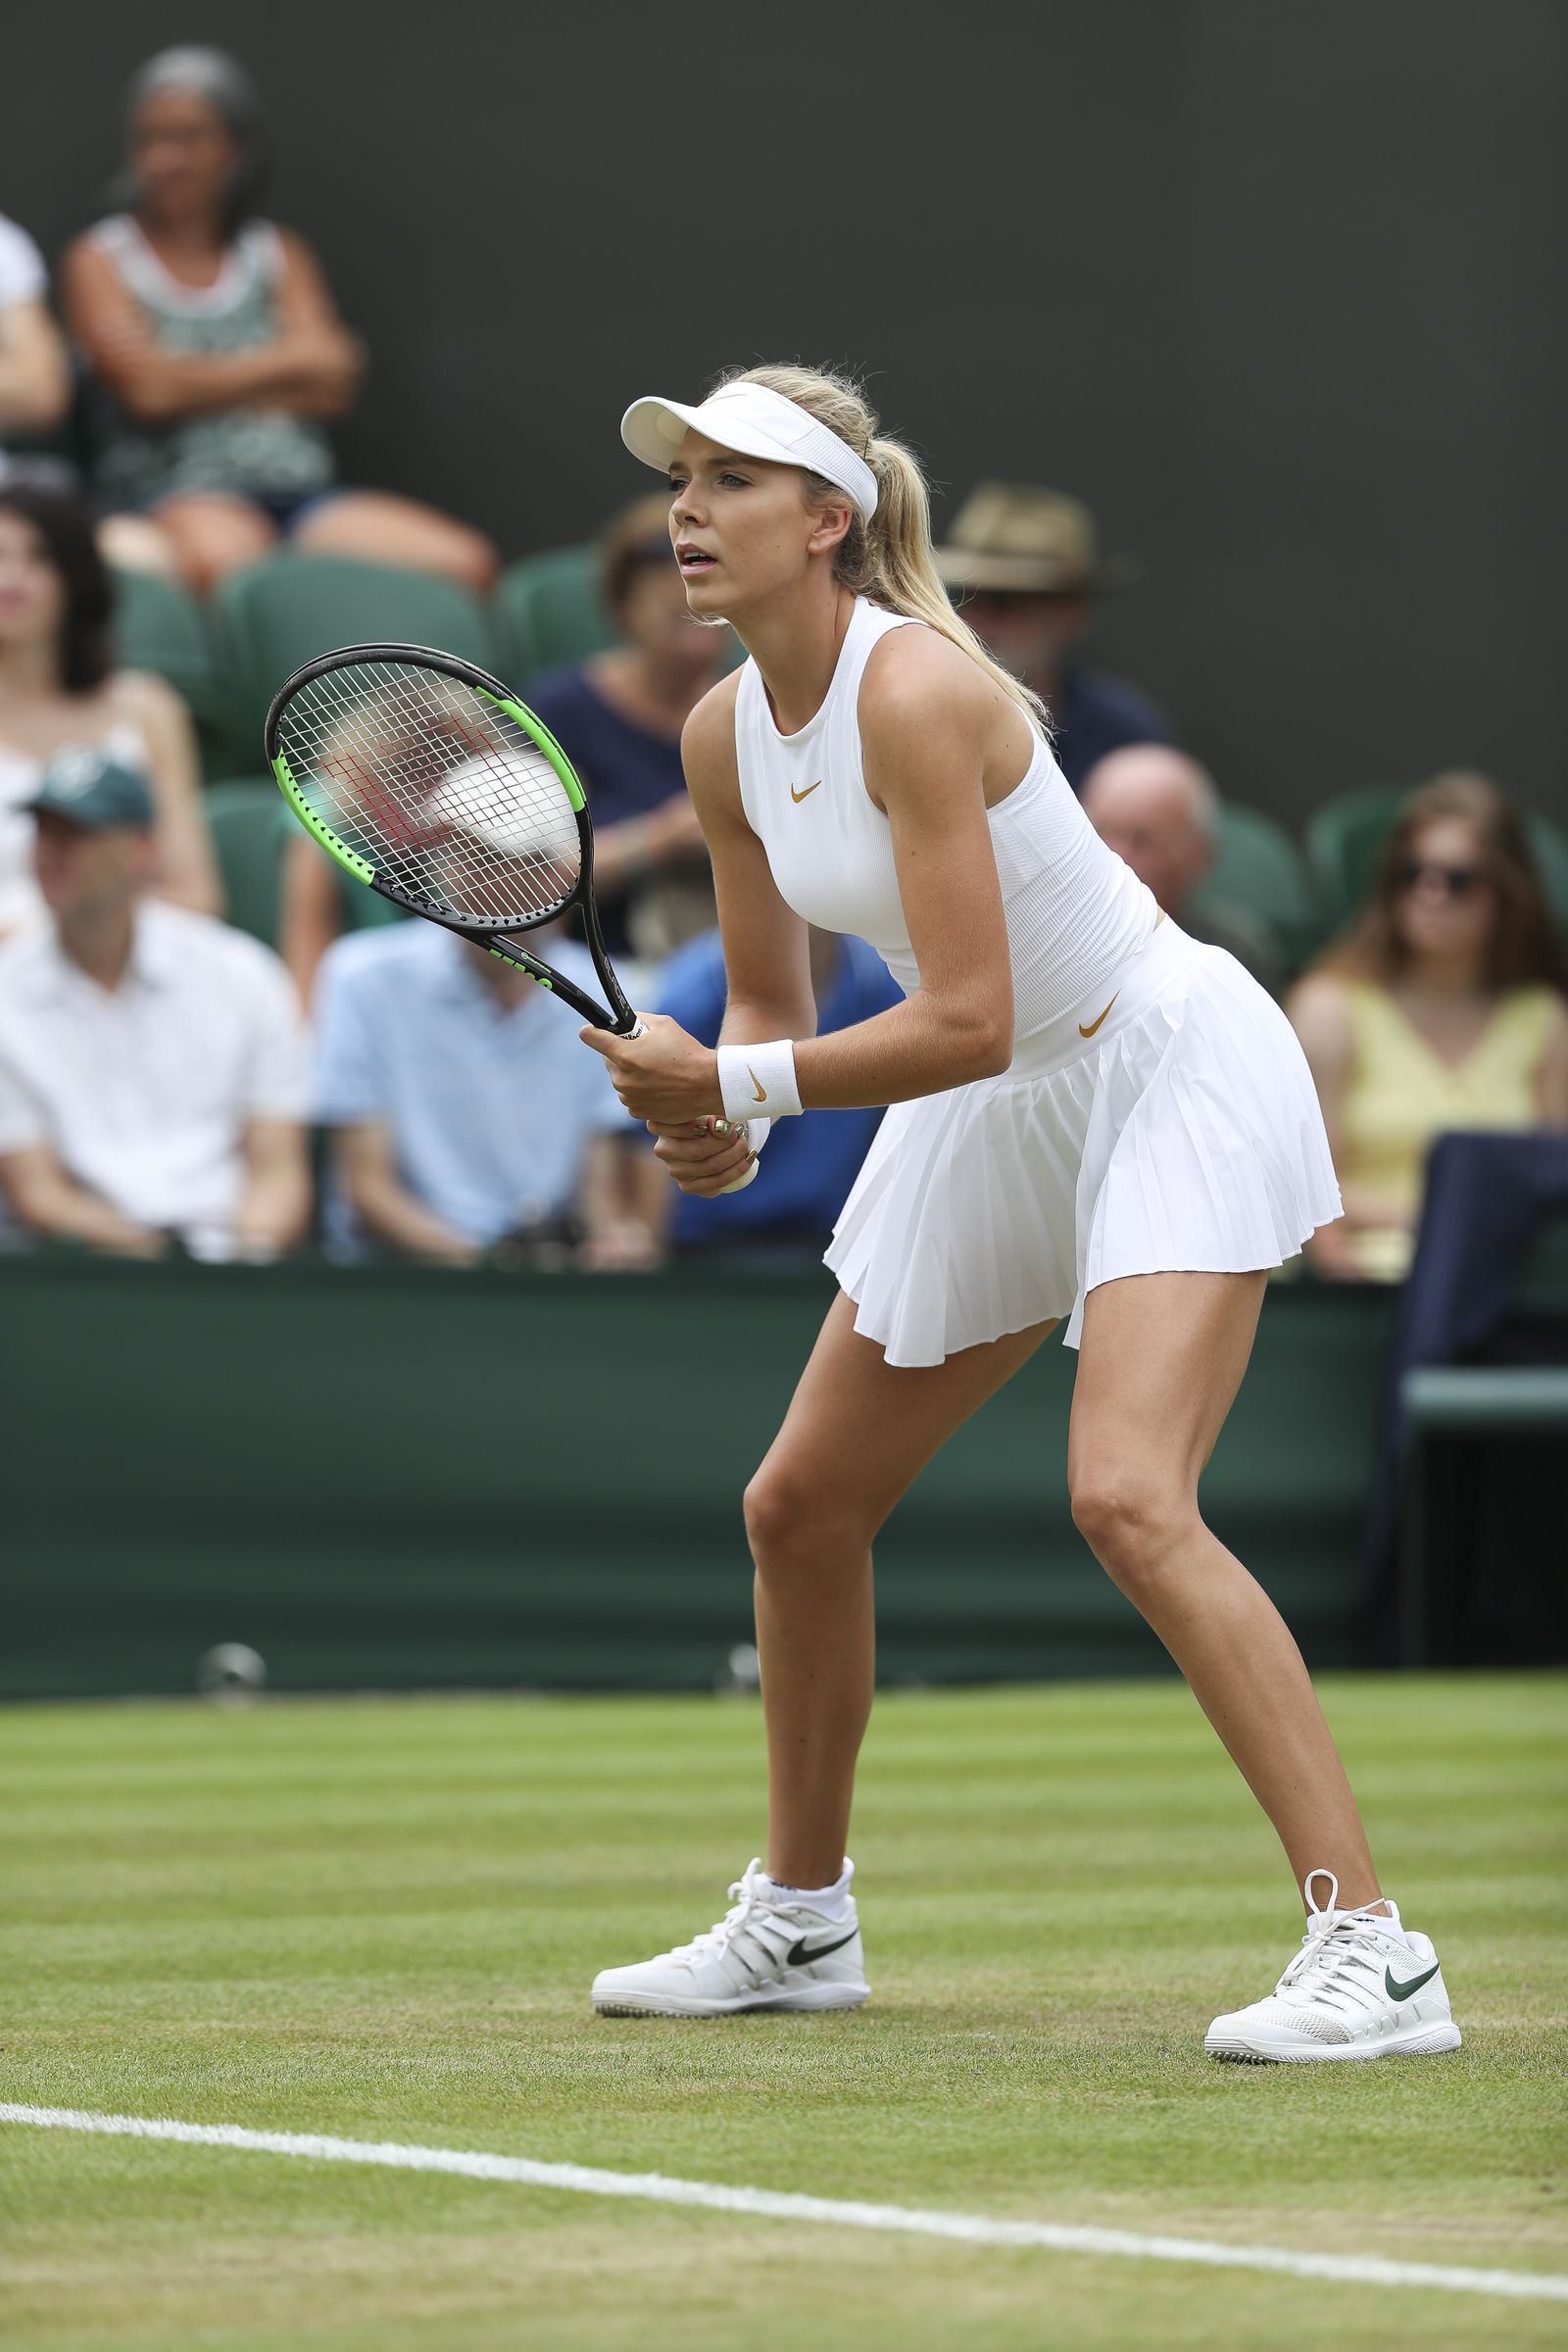 The Athlete Is As Stylish As She Is Talented Hair Masks Hair Masks Homemade Face Masks Face Masks In 2020 Tennis Players Female Tennis Outfit Women Tennis Photography